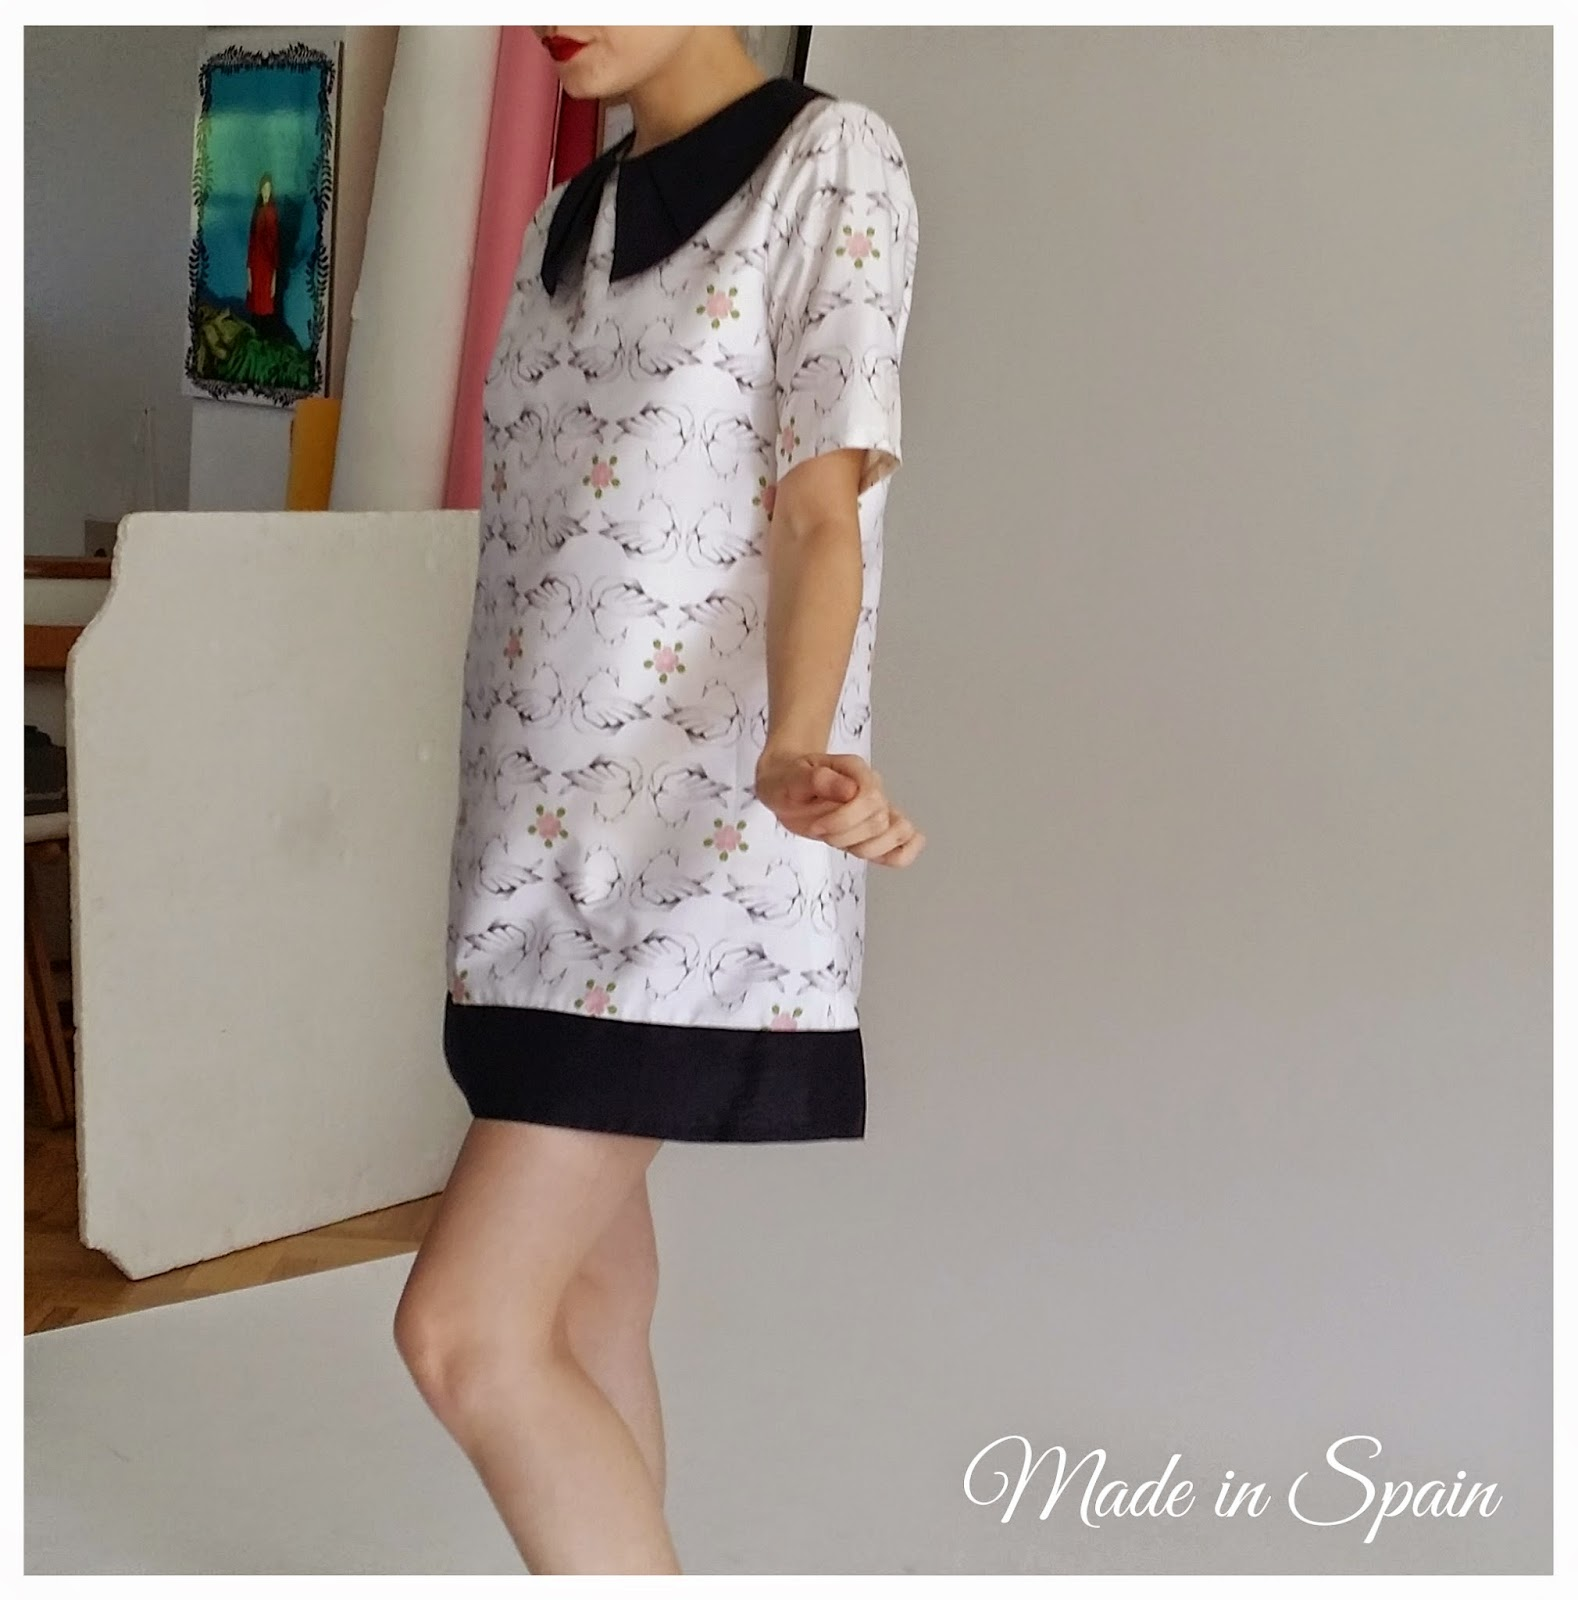 vestido workshop semestral